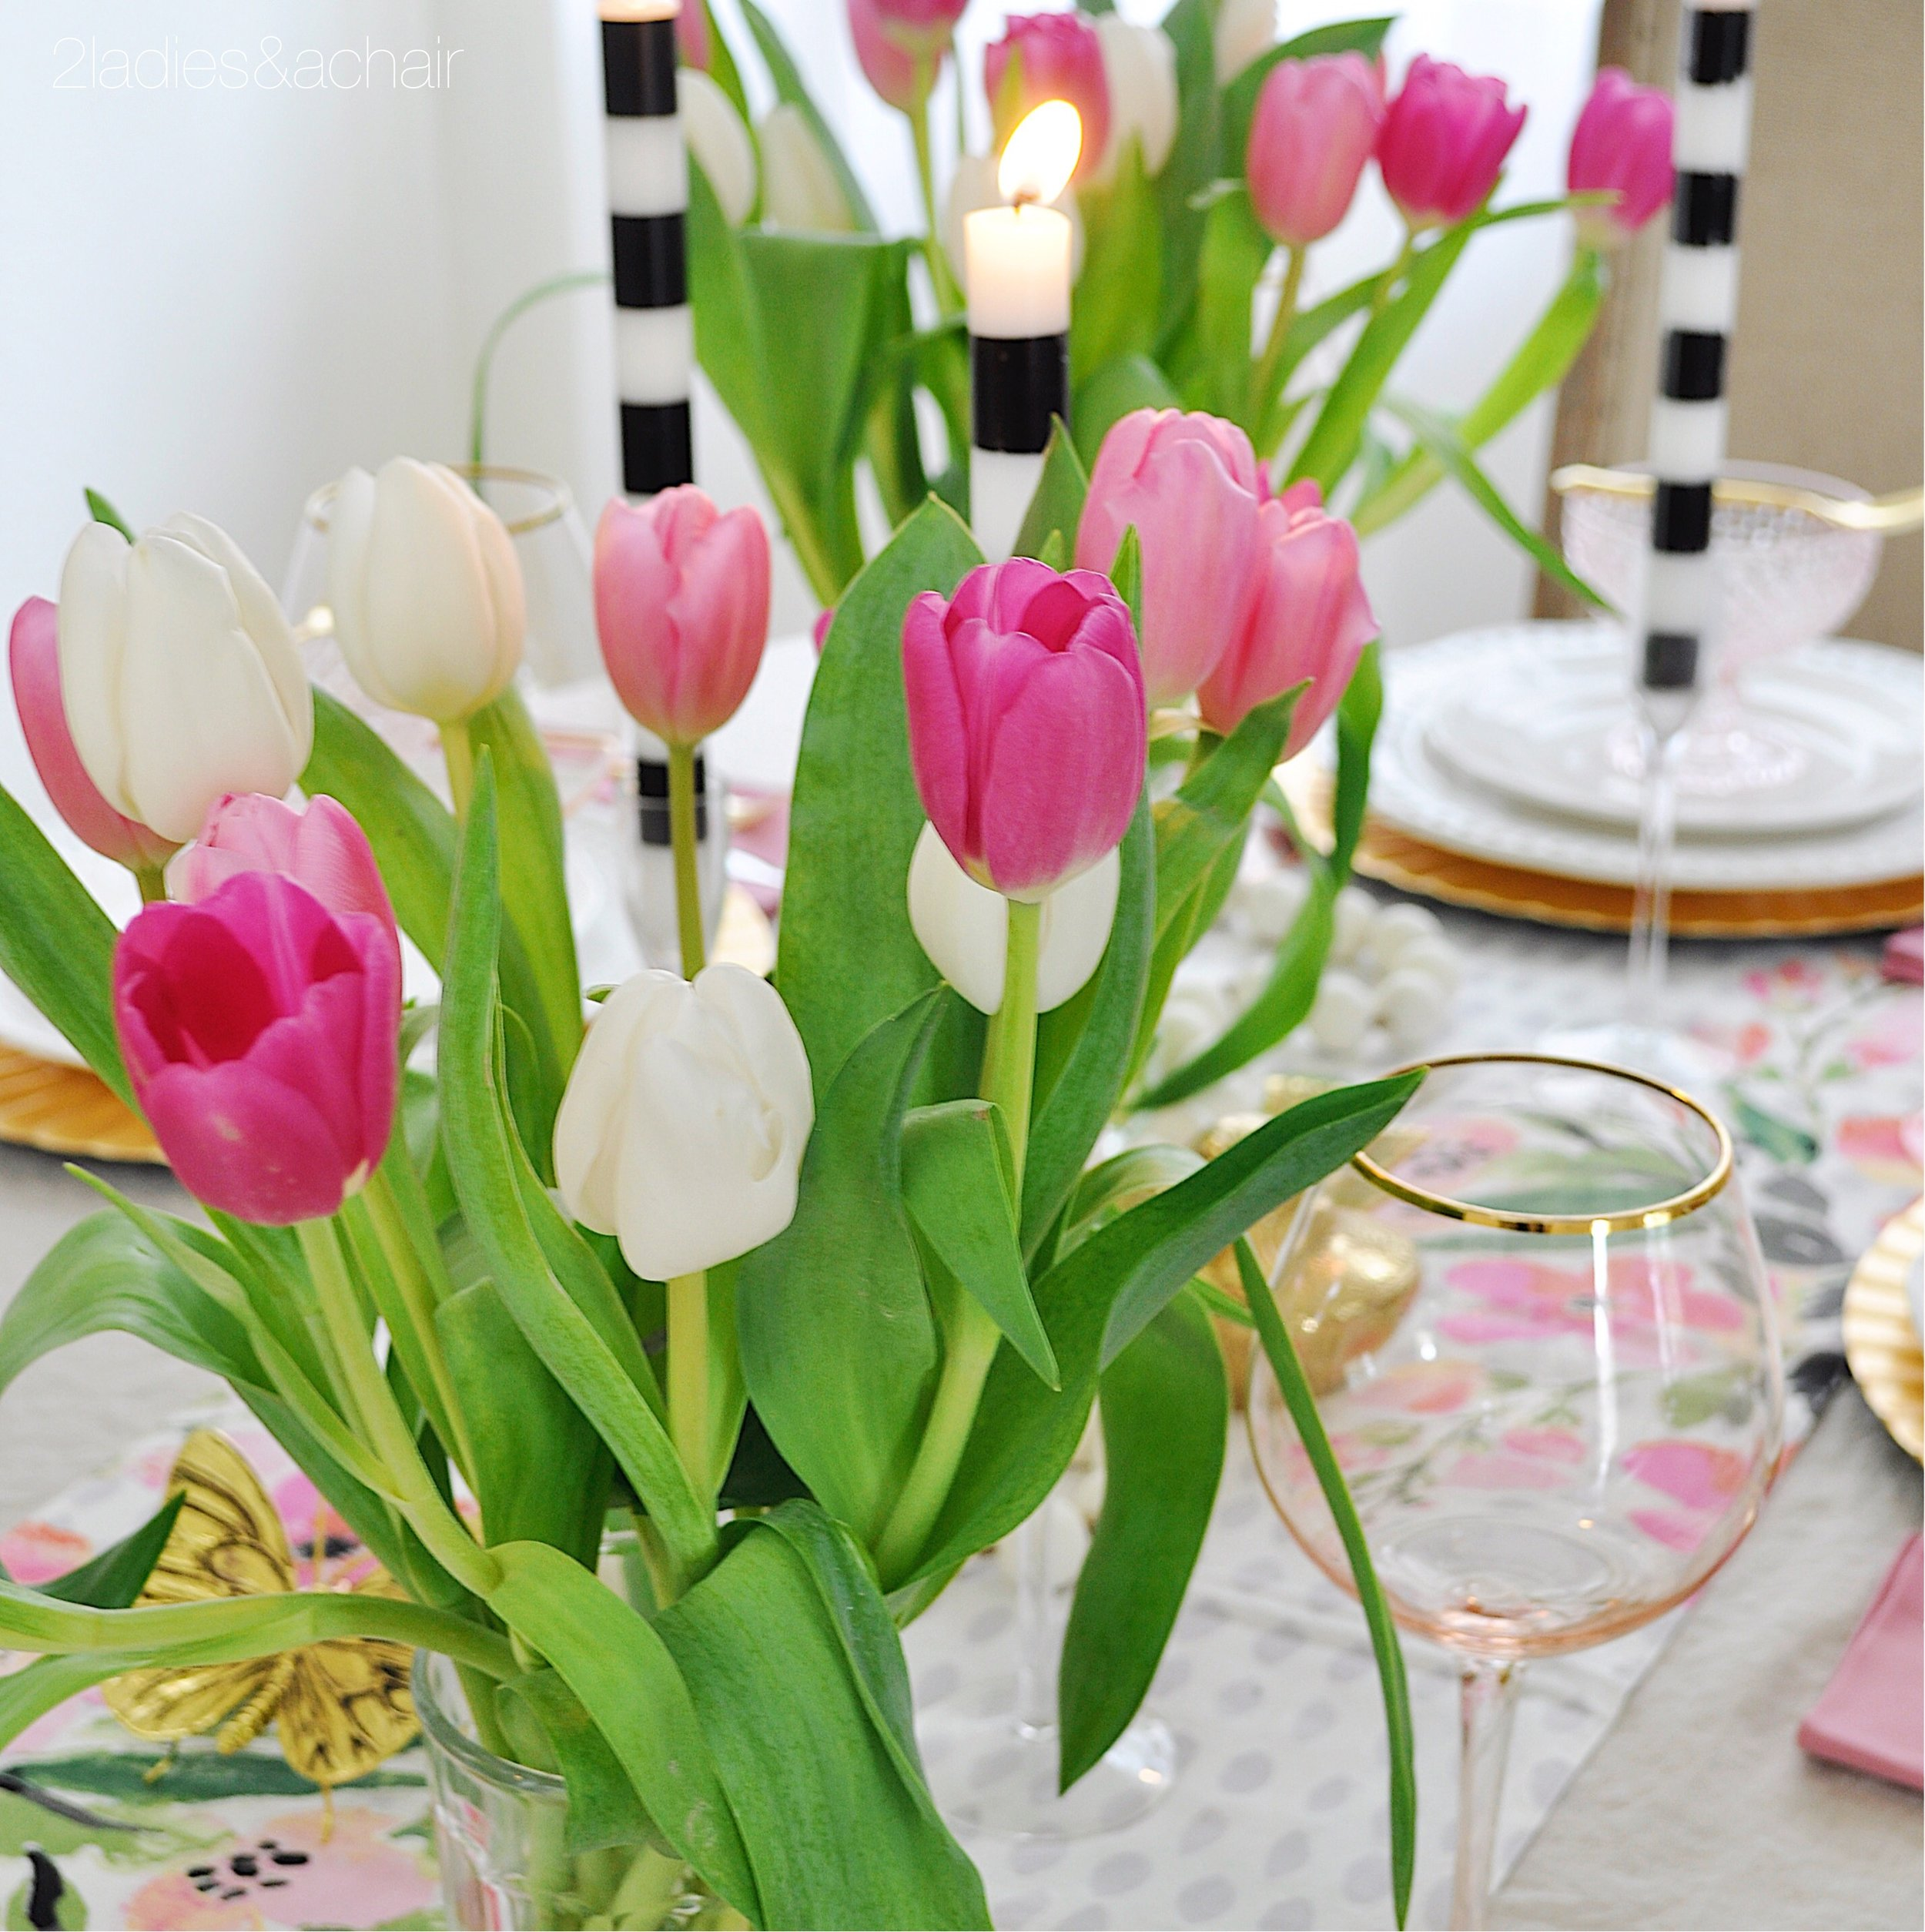 spring tablescape decor IMG_1942.JPG